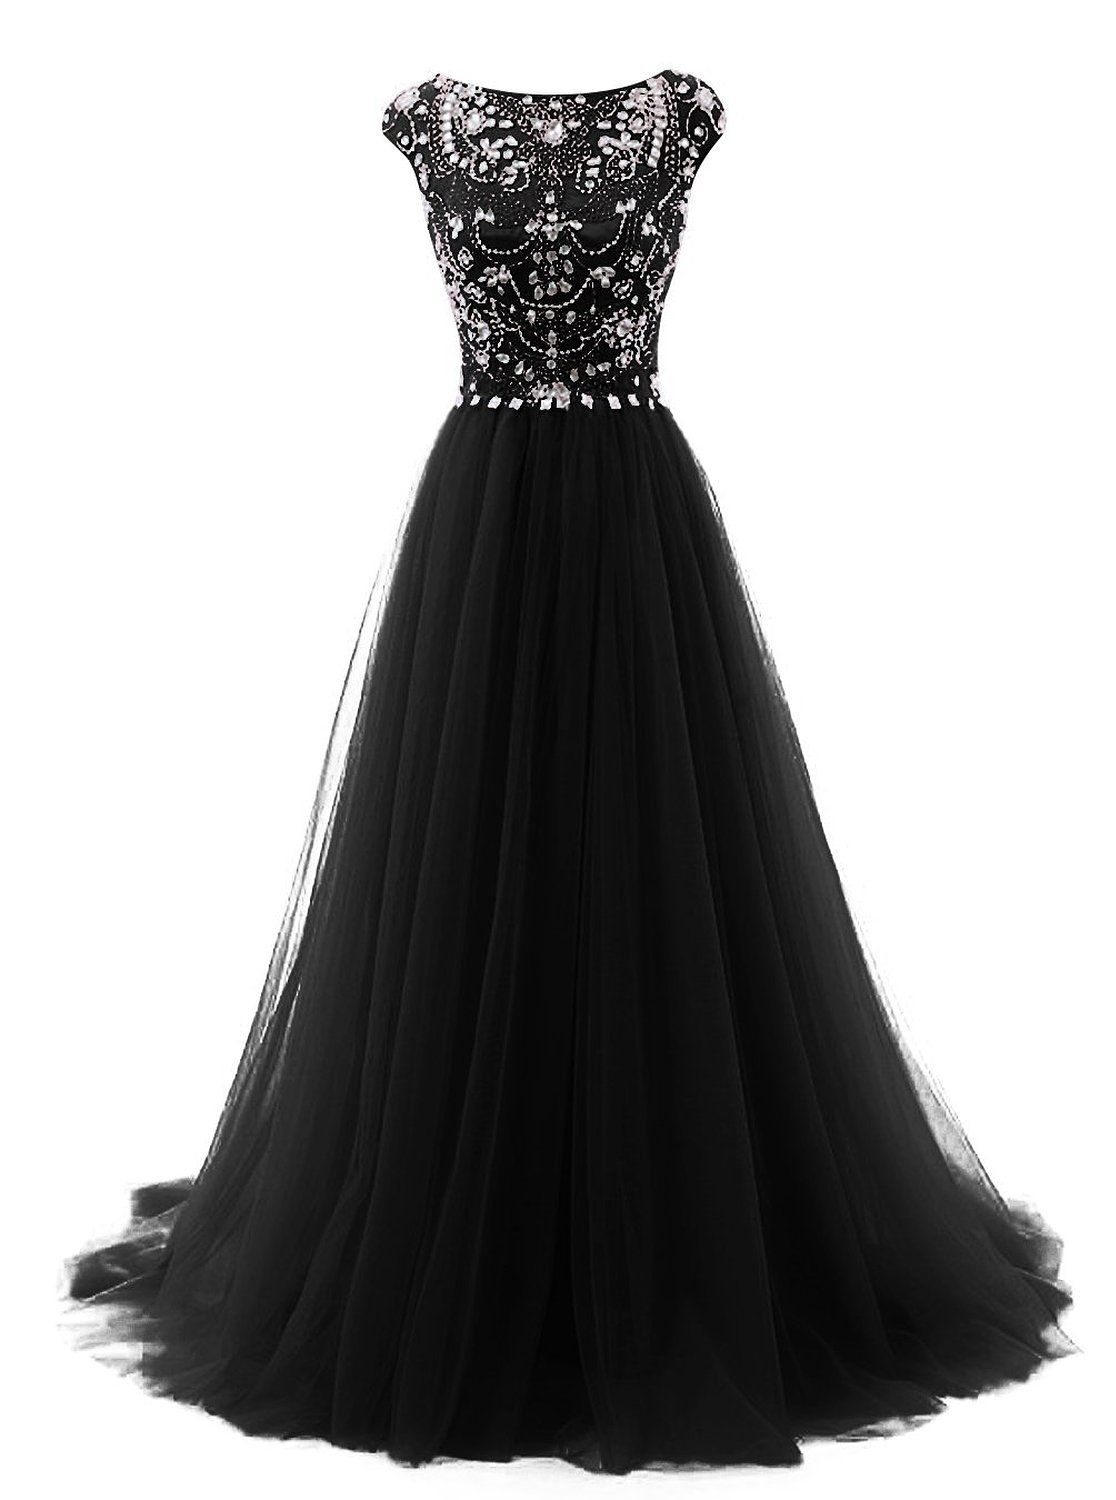 Tideclothes long beads prom dress tulle cap sleeves evening dress